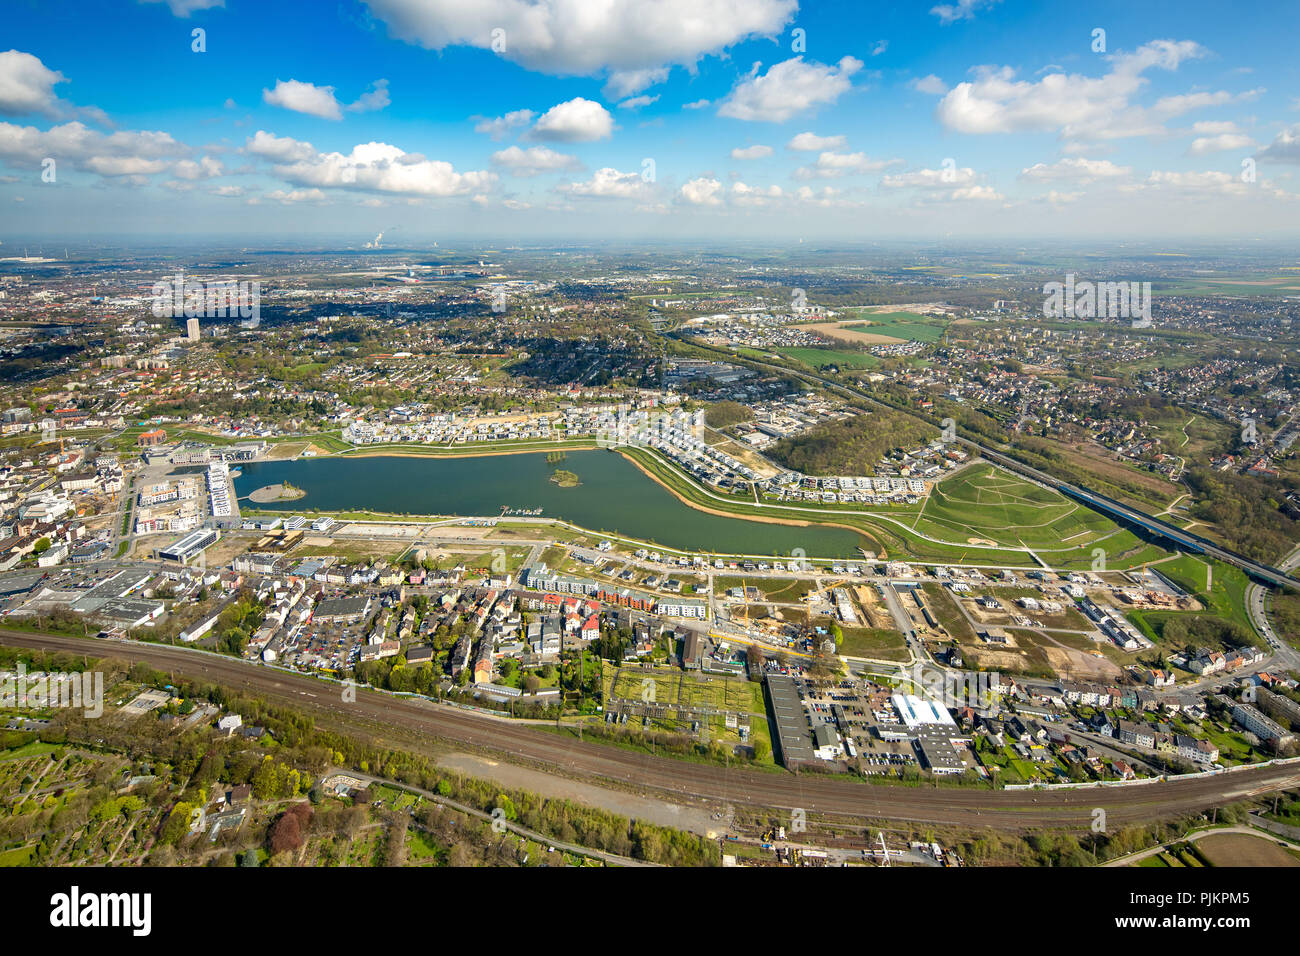 Phoenix Lake is an artificial lake on the former steelworks Phoenix East in Dortmund district Hörde, recreational area, residential area, rainwater retention basin, Dortmund, Ruhr, North Rhine-Westphalia, Germany Stock Photo